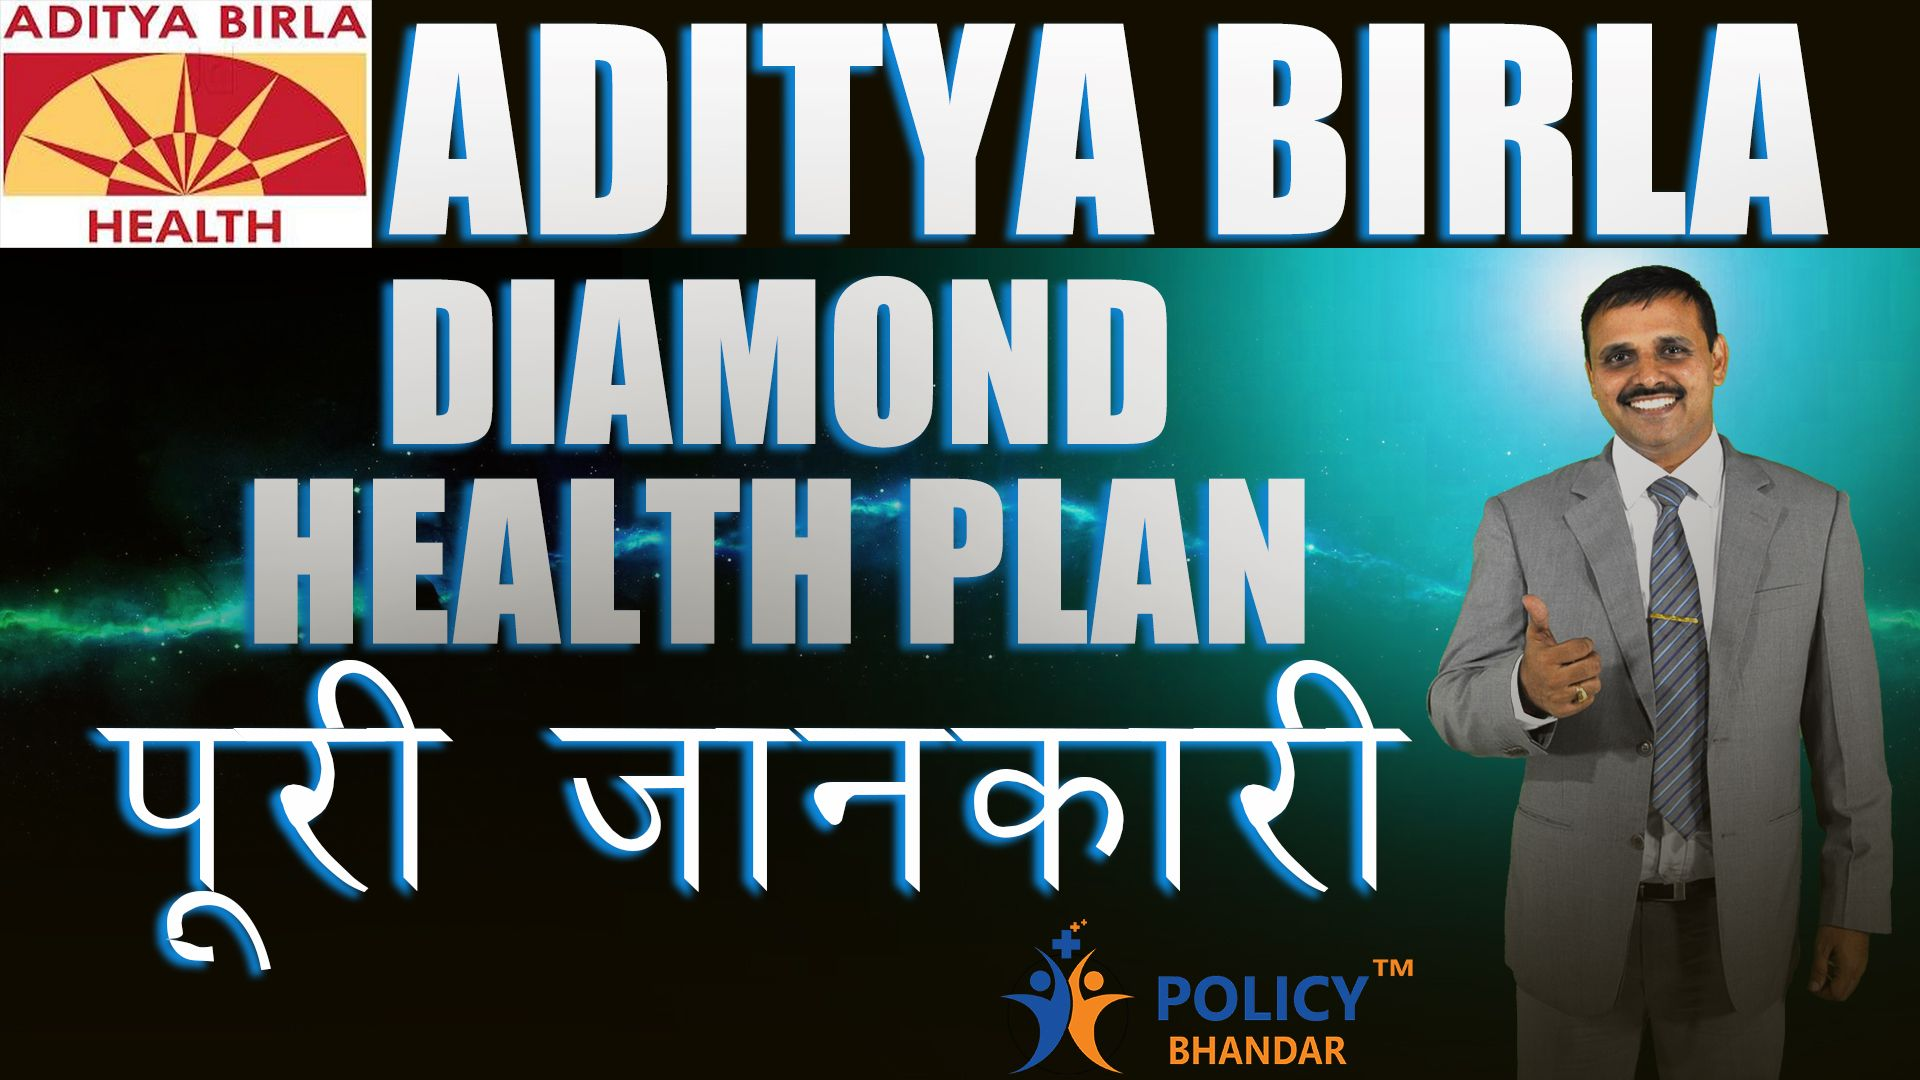 Pin On Policy Bhandar